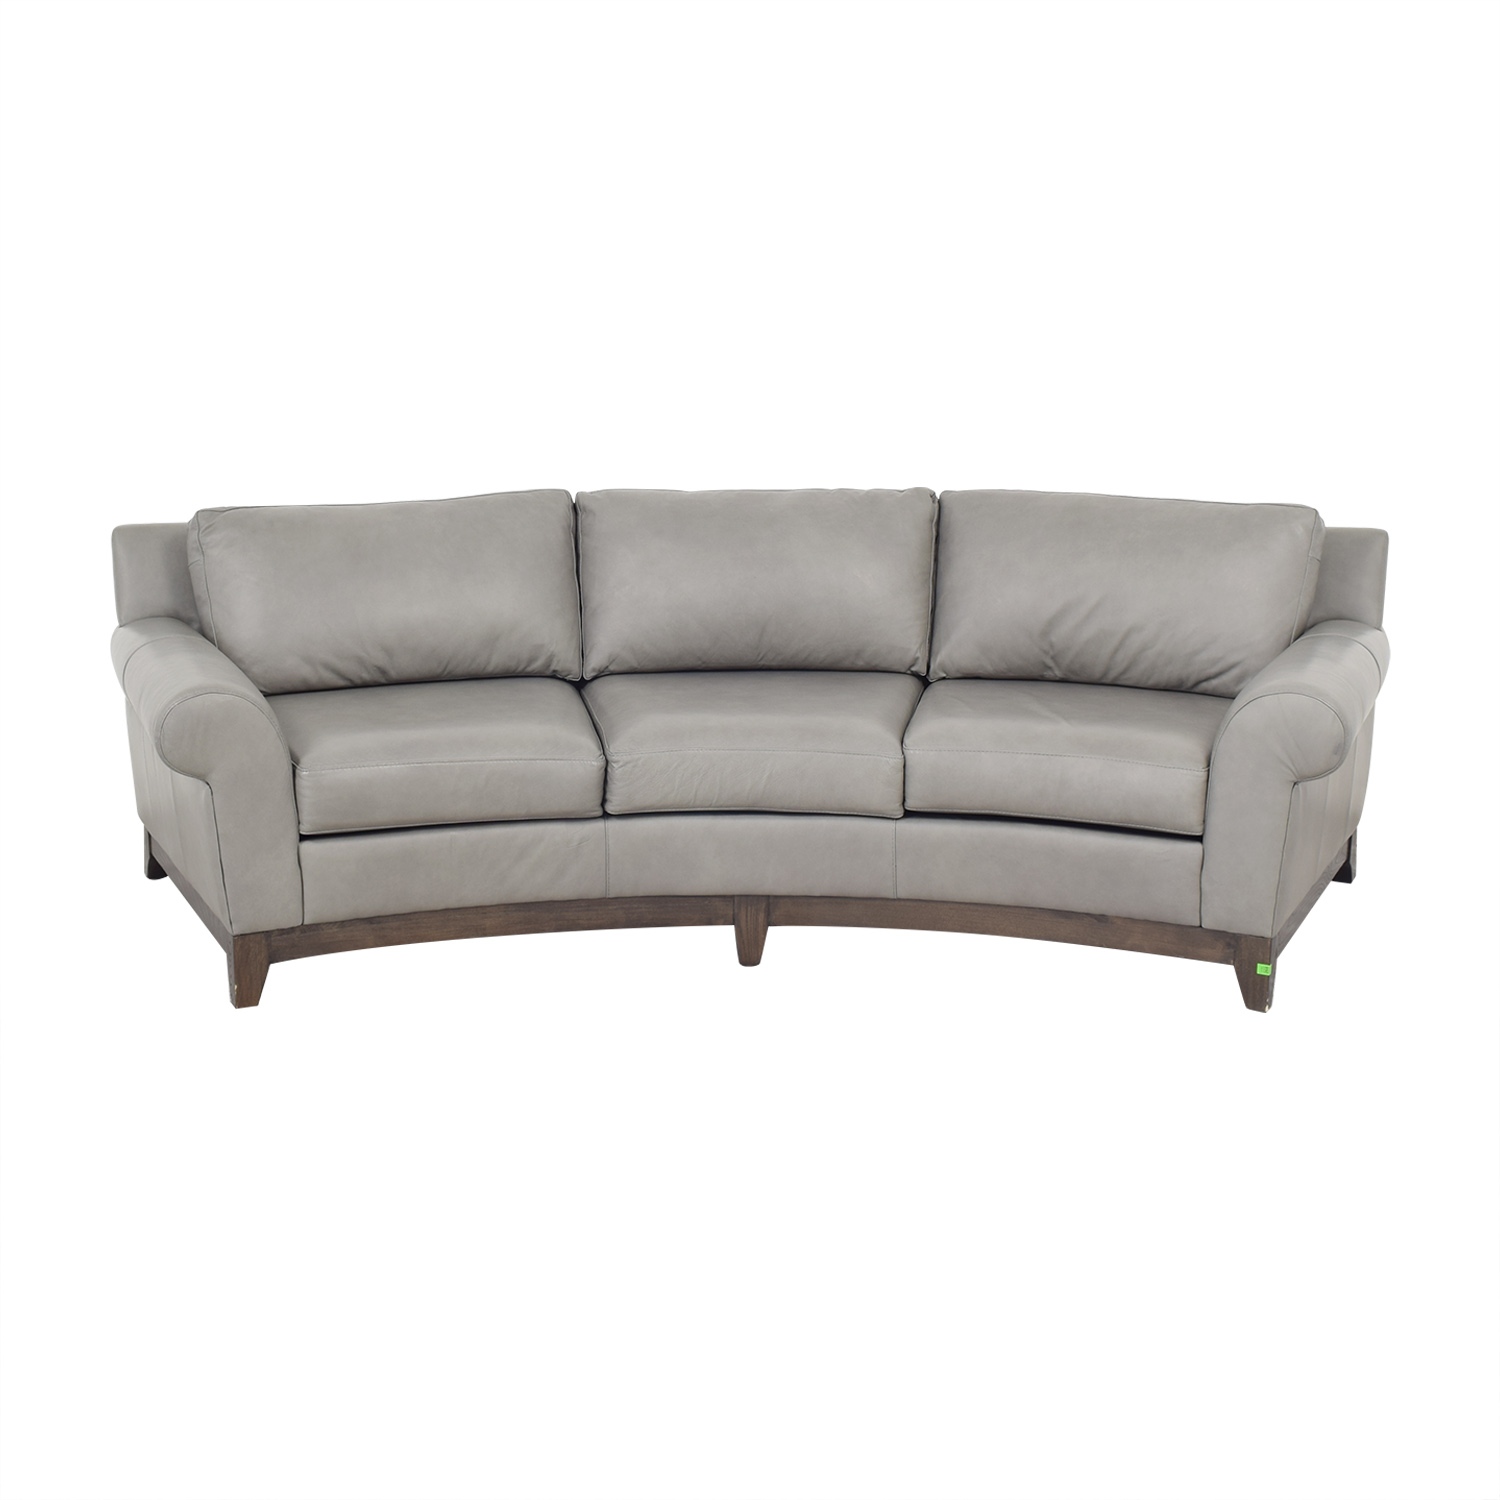 Elite Leather Company Elite Leather Company Curved Sofa ct